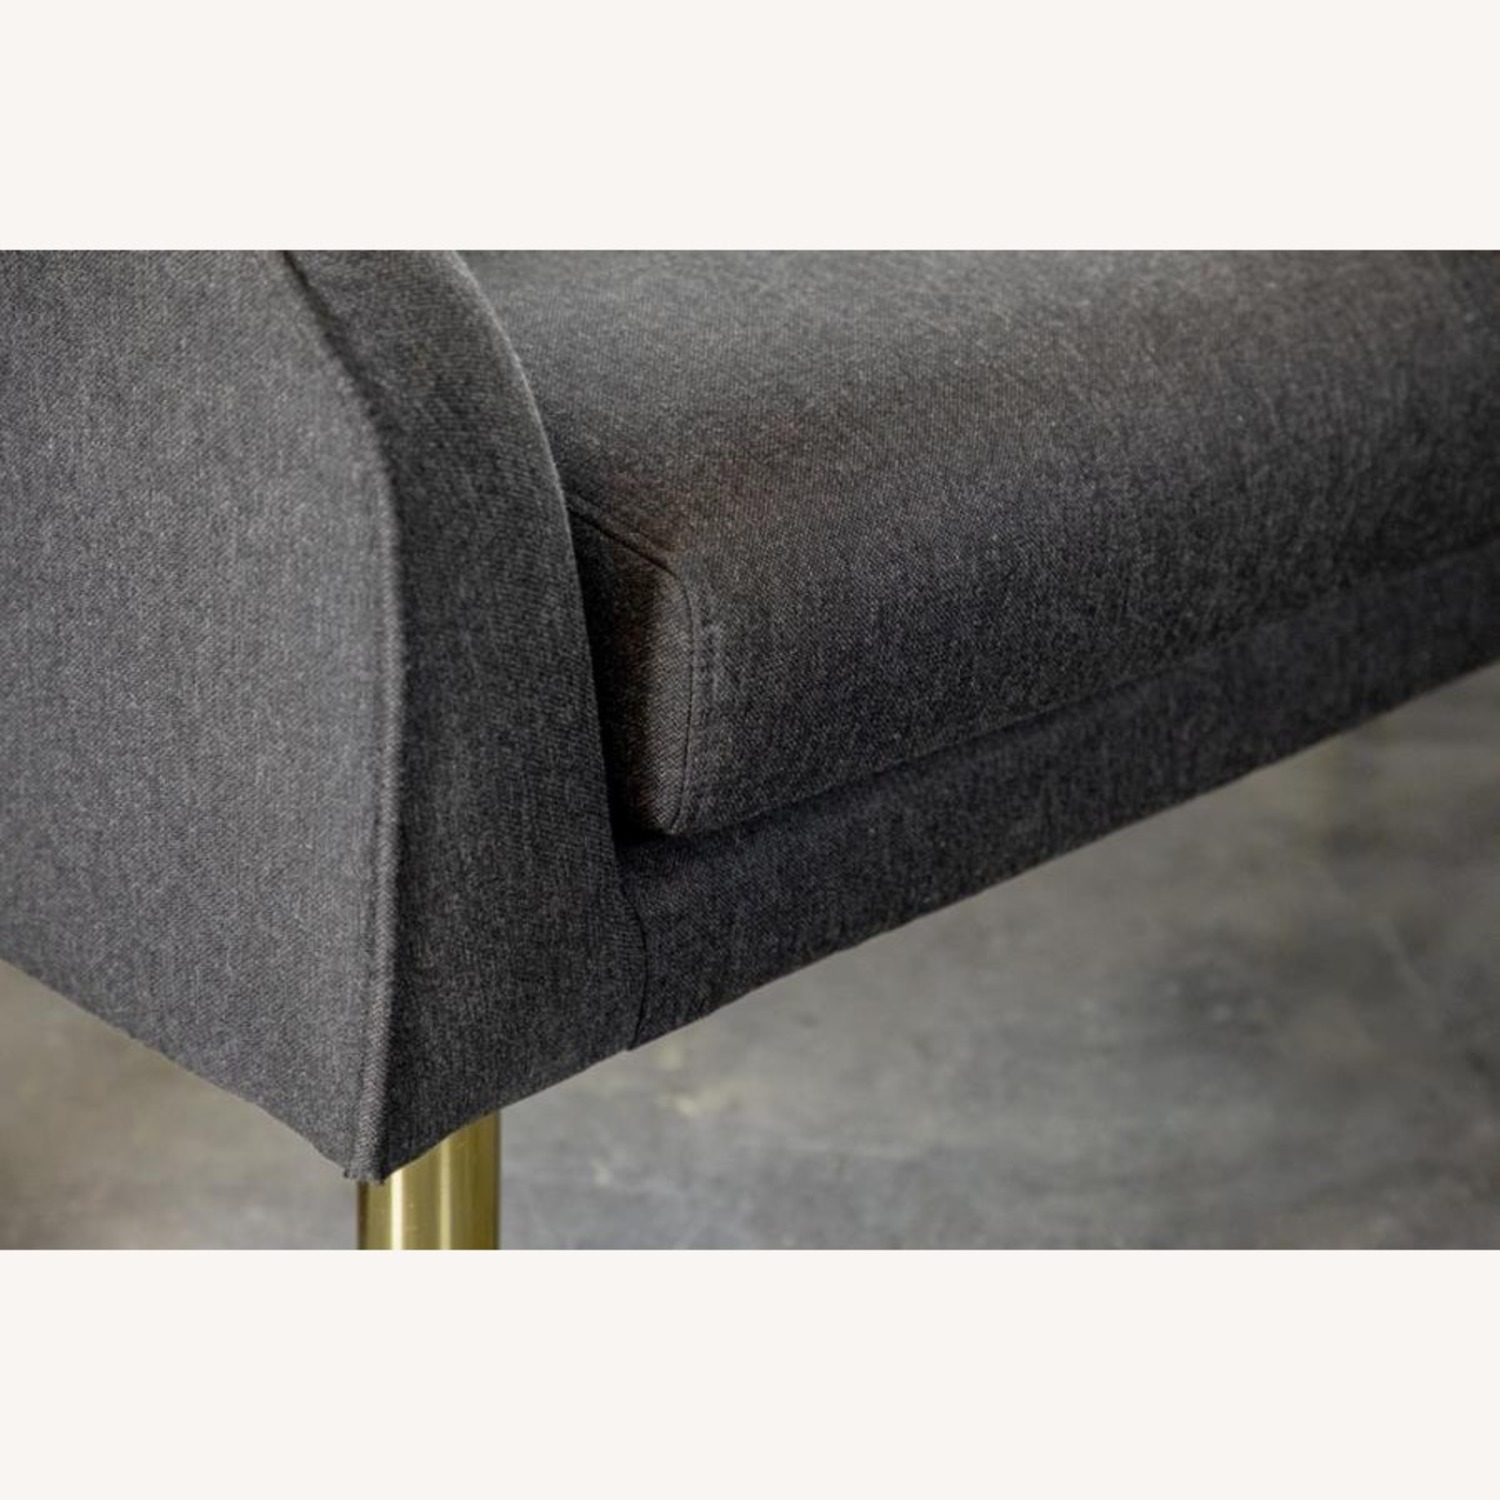 Bench In Dark Grey Woven Fabric W/ Tapered Legs - image-2